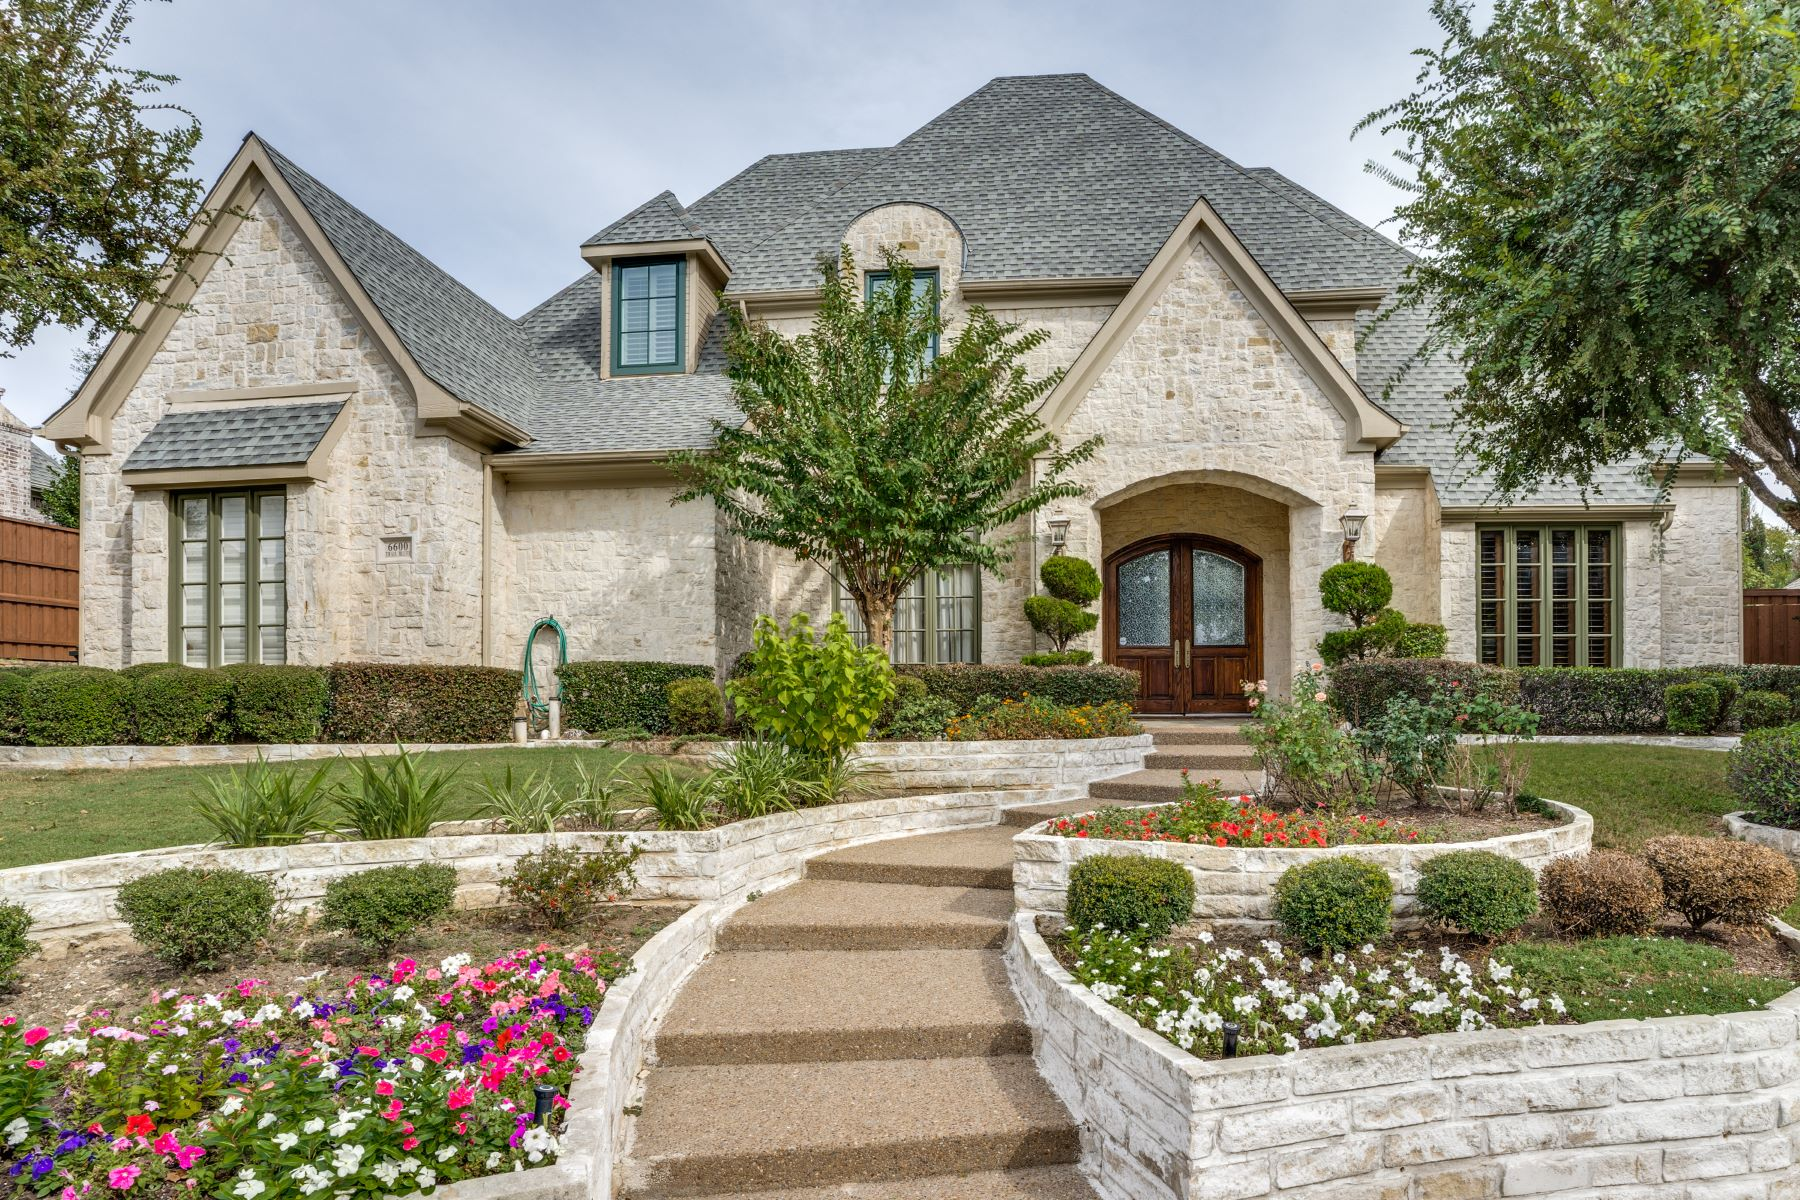 Single Family Homes for Sale at Elegant custom home 6600 Trail Bluff Plano, Texas 75024 United States